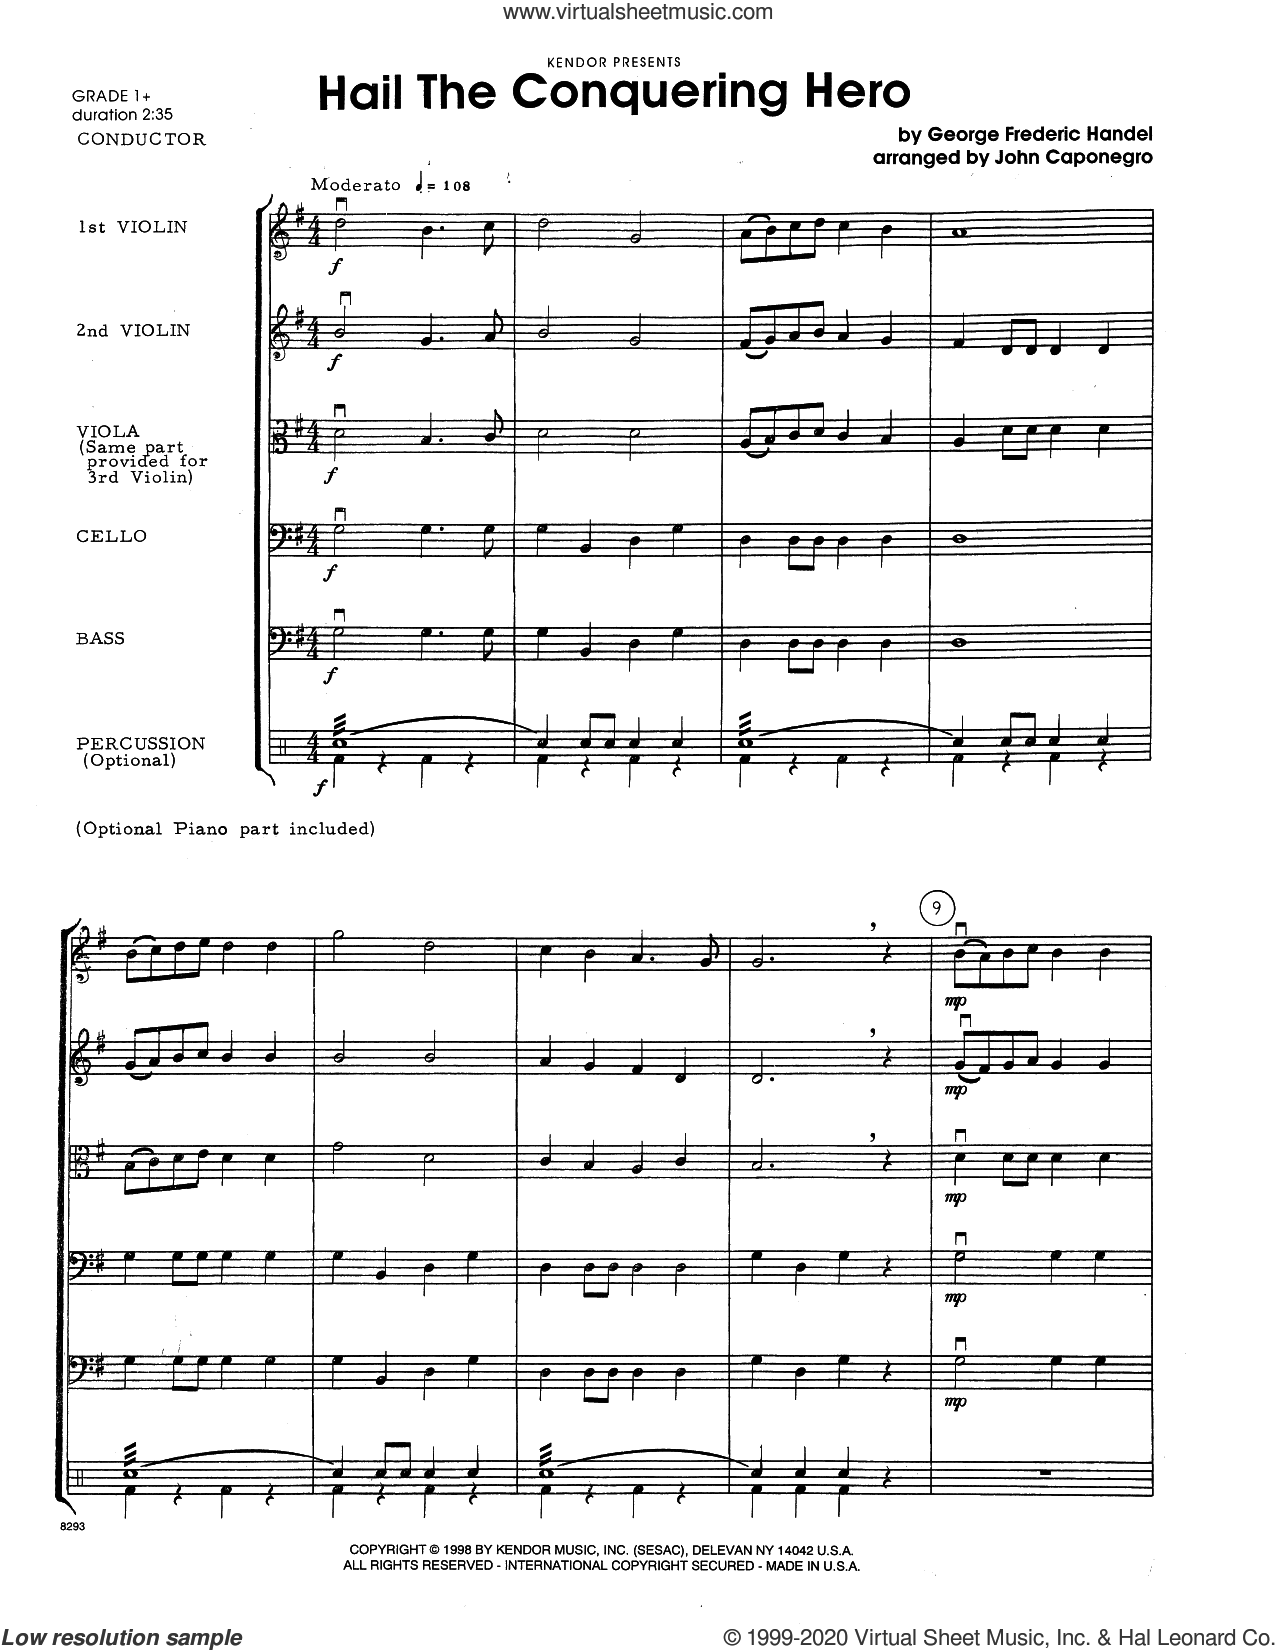 Hail The Conquering Hero (from 'Judas Maccabeus') (arr. John Caponegro) (COMPLETE) sheet music for orchestra by George Frideric Handel and John Caponegro, intermediate skill level